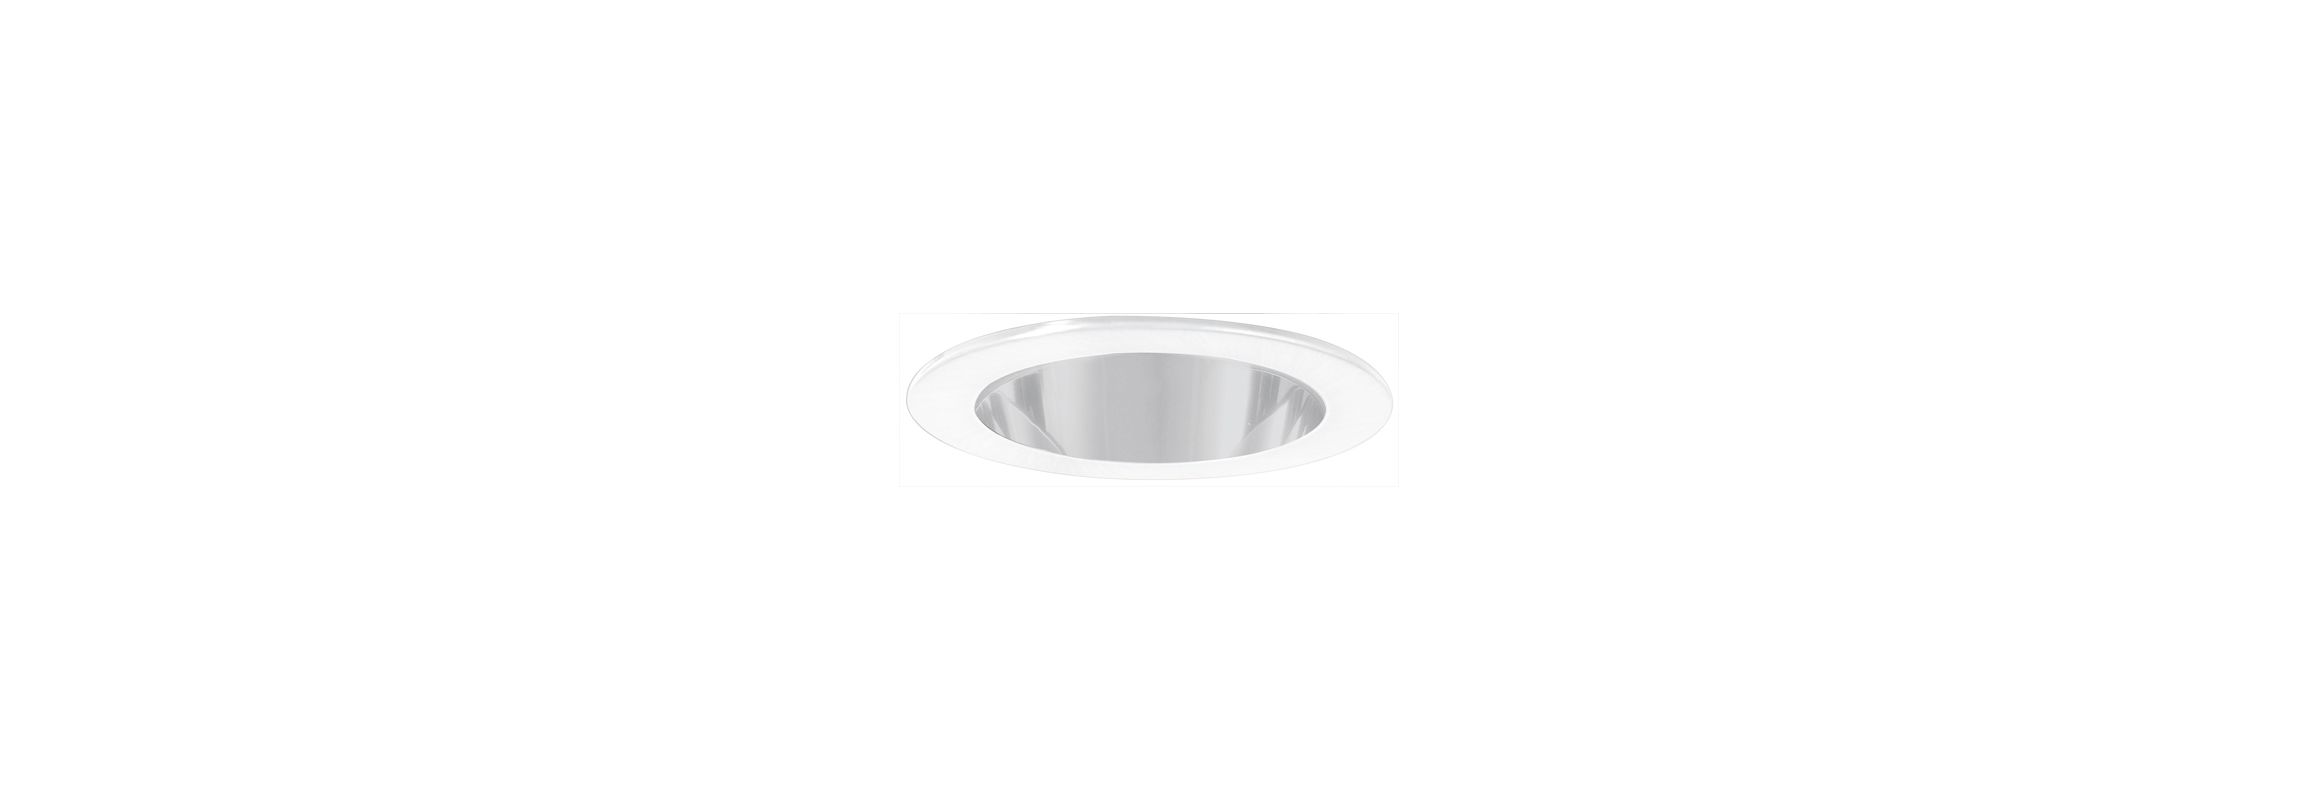 "Elco EL911 4"" CFL Shower Trim with Clear Lens White Recessed Lights"